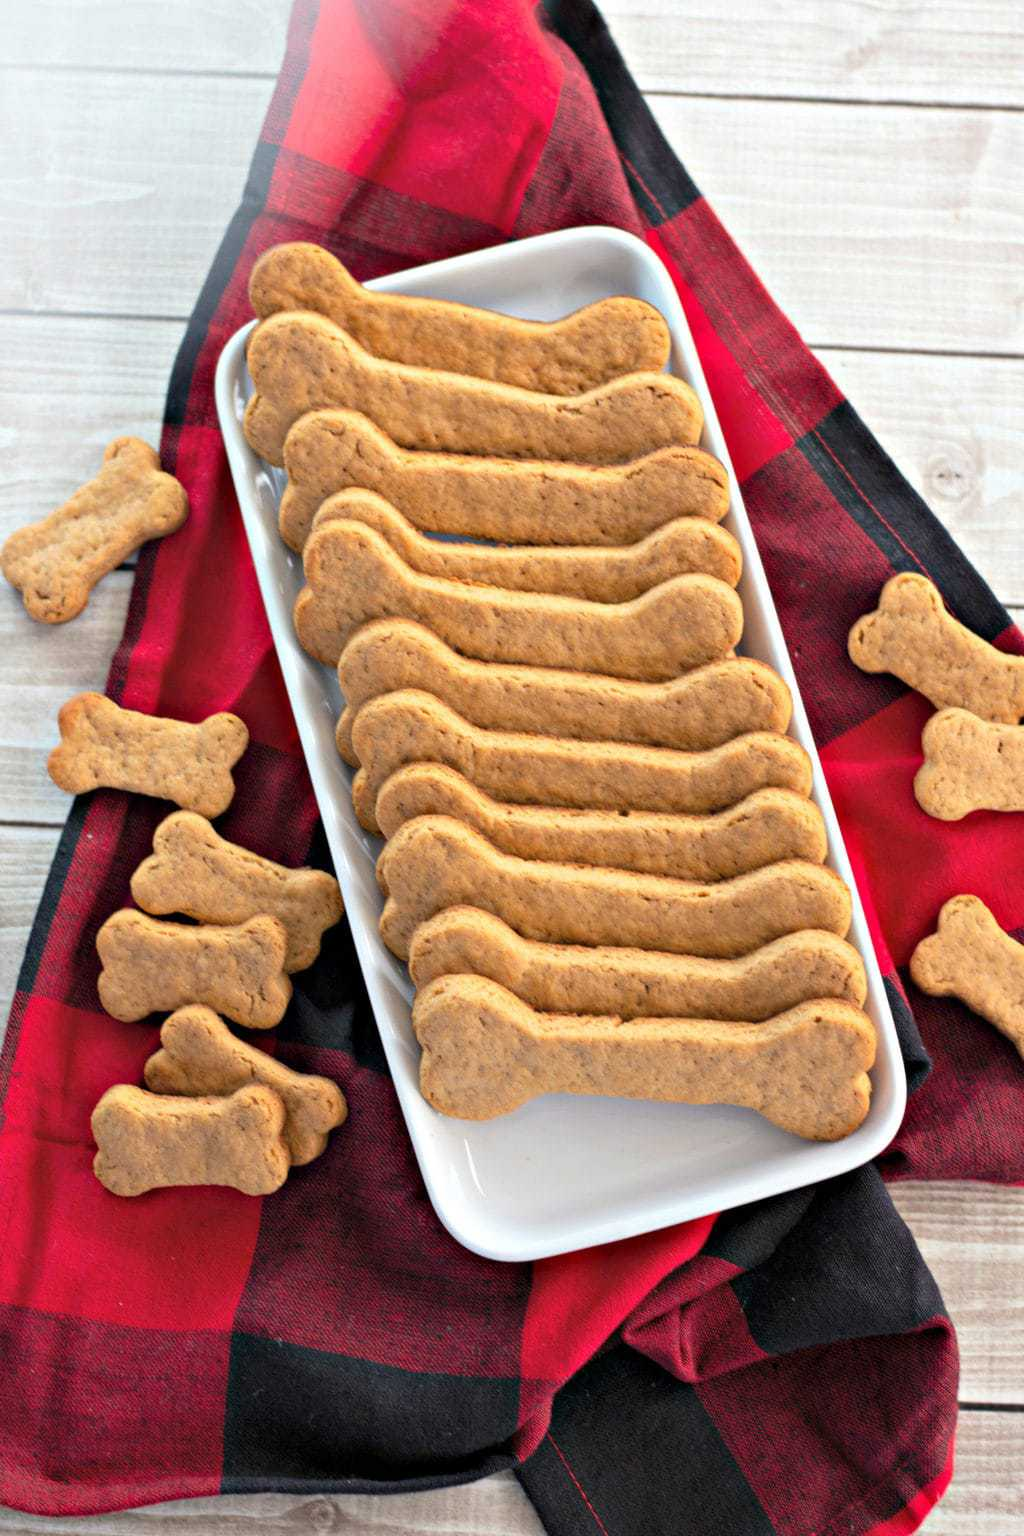 Homemade Dog Treats Made With Peanut Butter, served on White tray